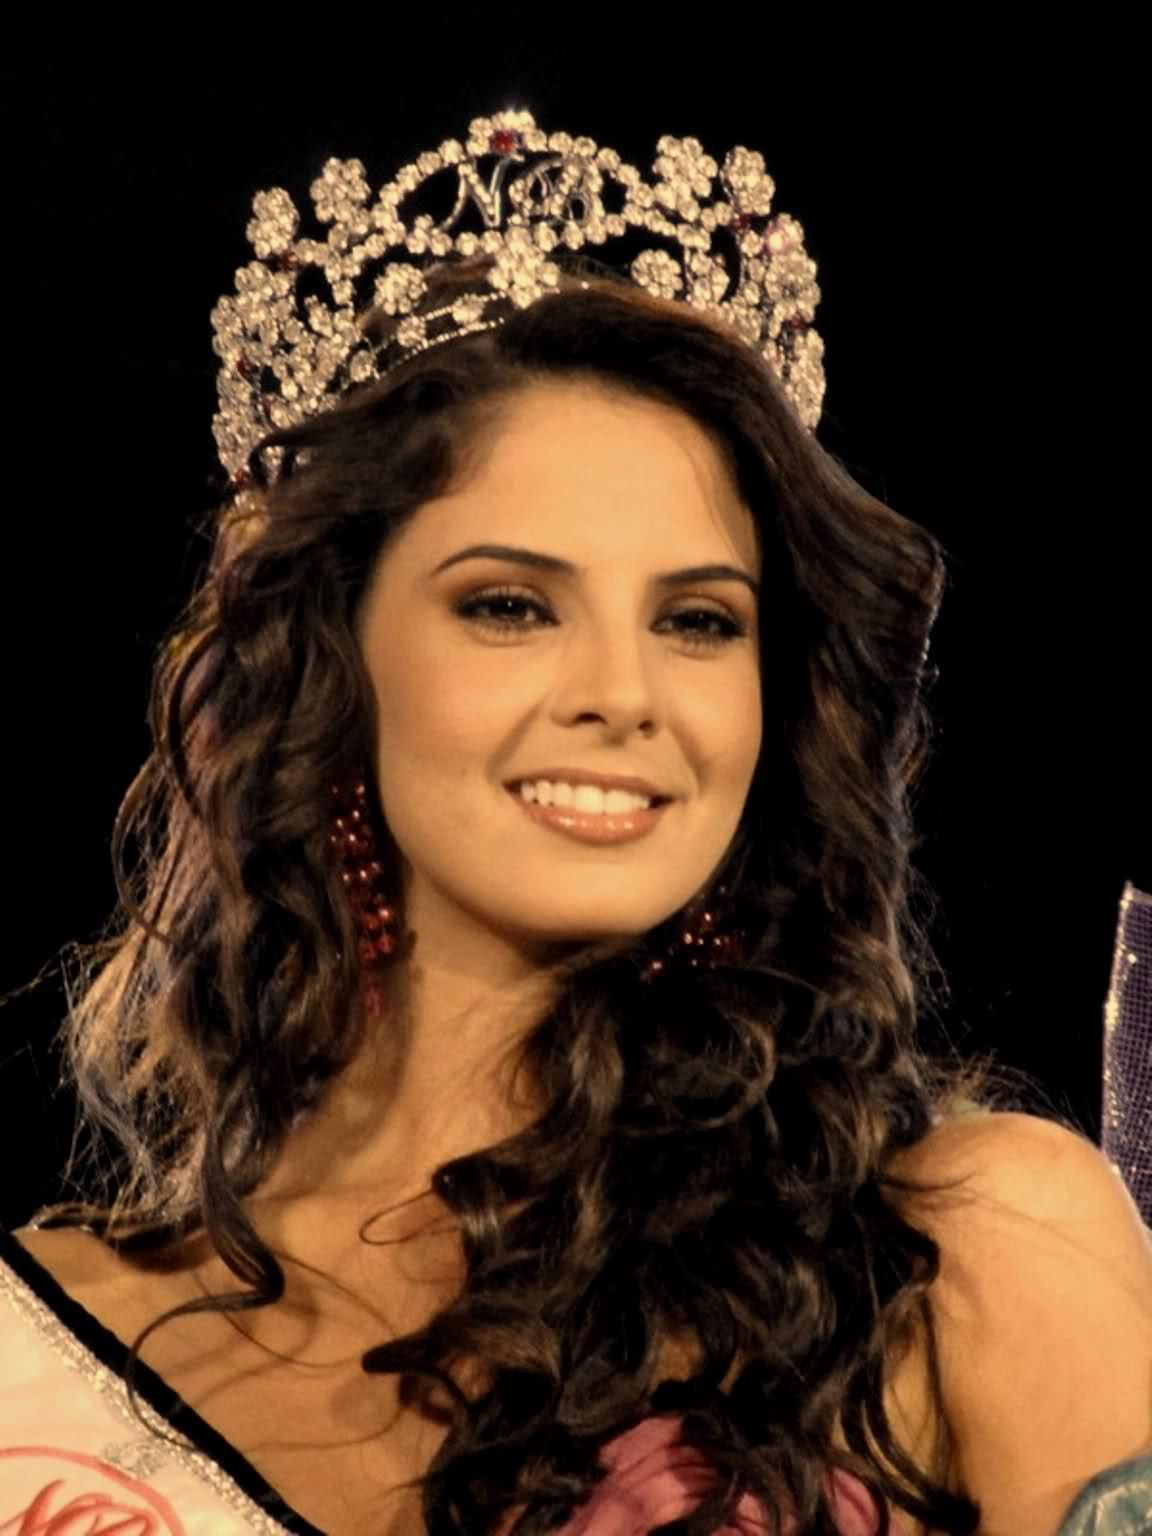 mariana berumen, top 36 de miss model of the world 2018/top 15 de miss world 2012 - Página 6 Bf4f4e10